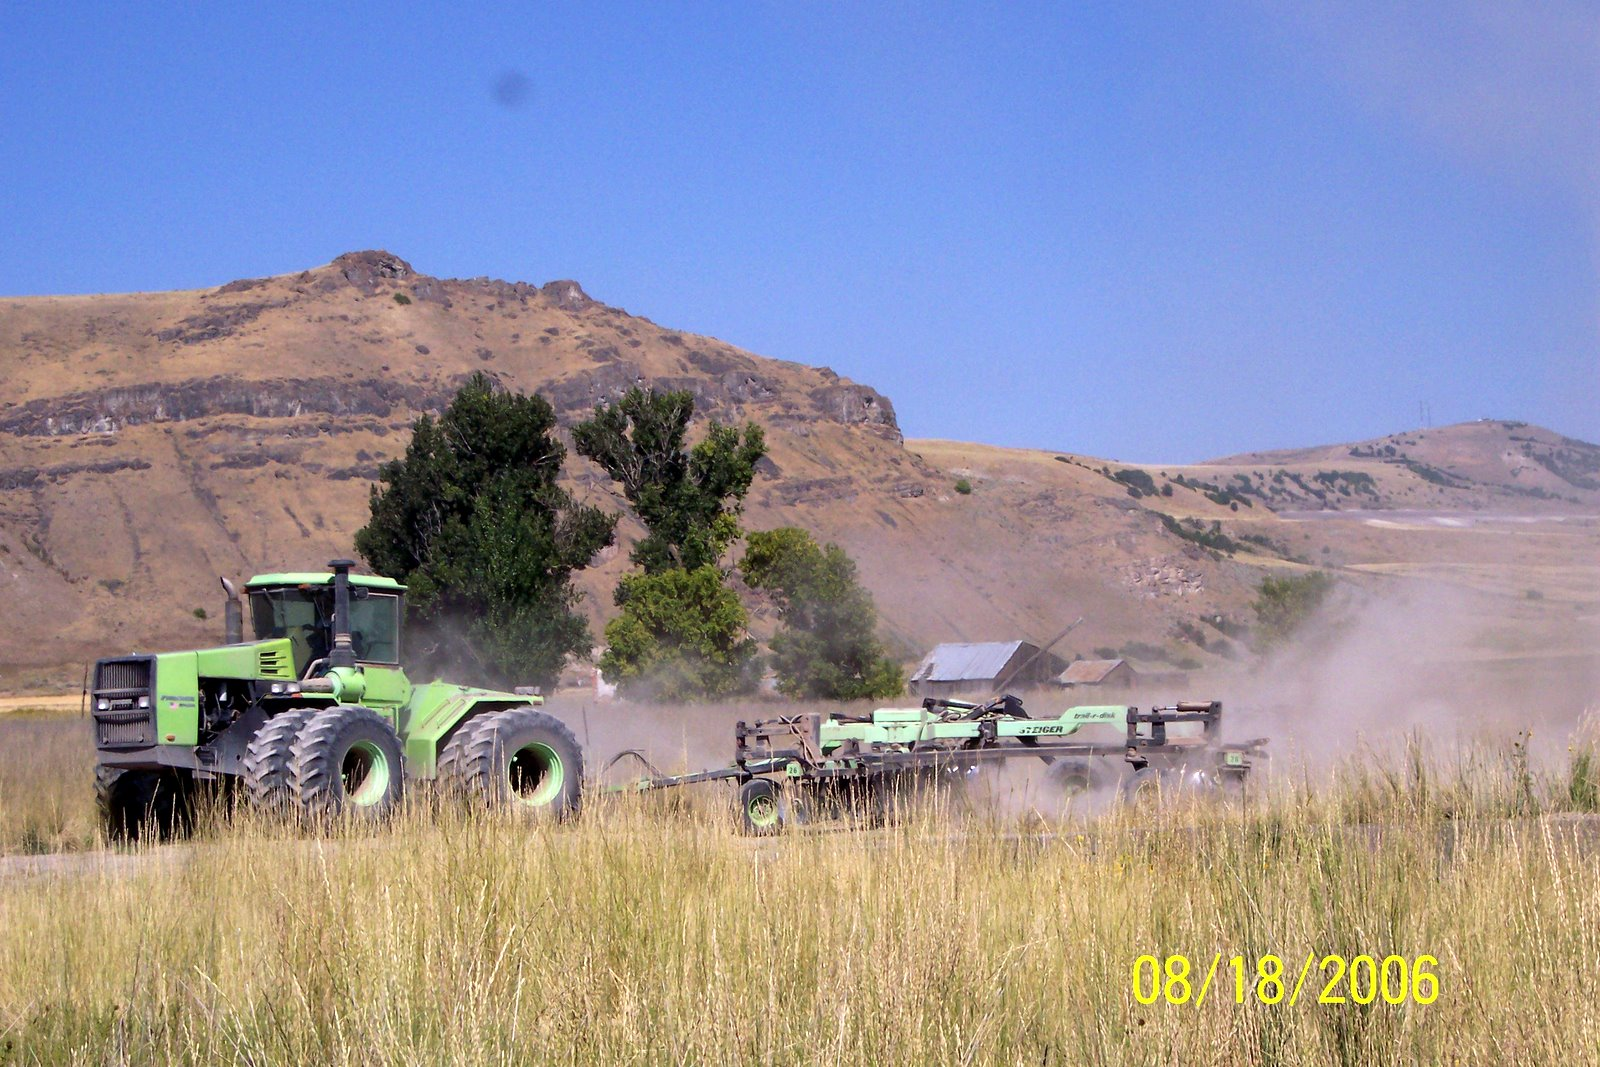 LARRY ROUNDY, FARMER, DOES WEED CONTROL WITH A VERY WIDE DISC.